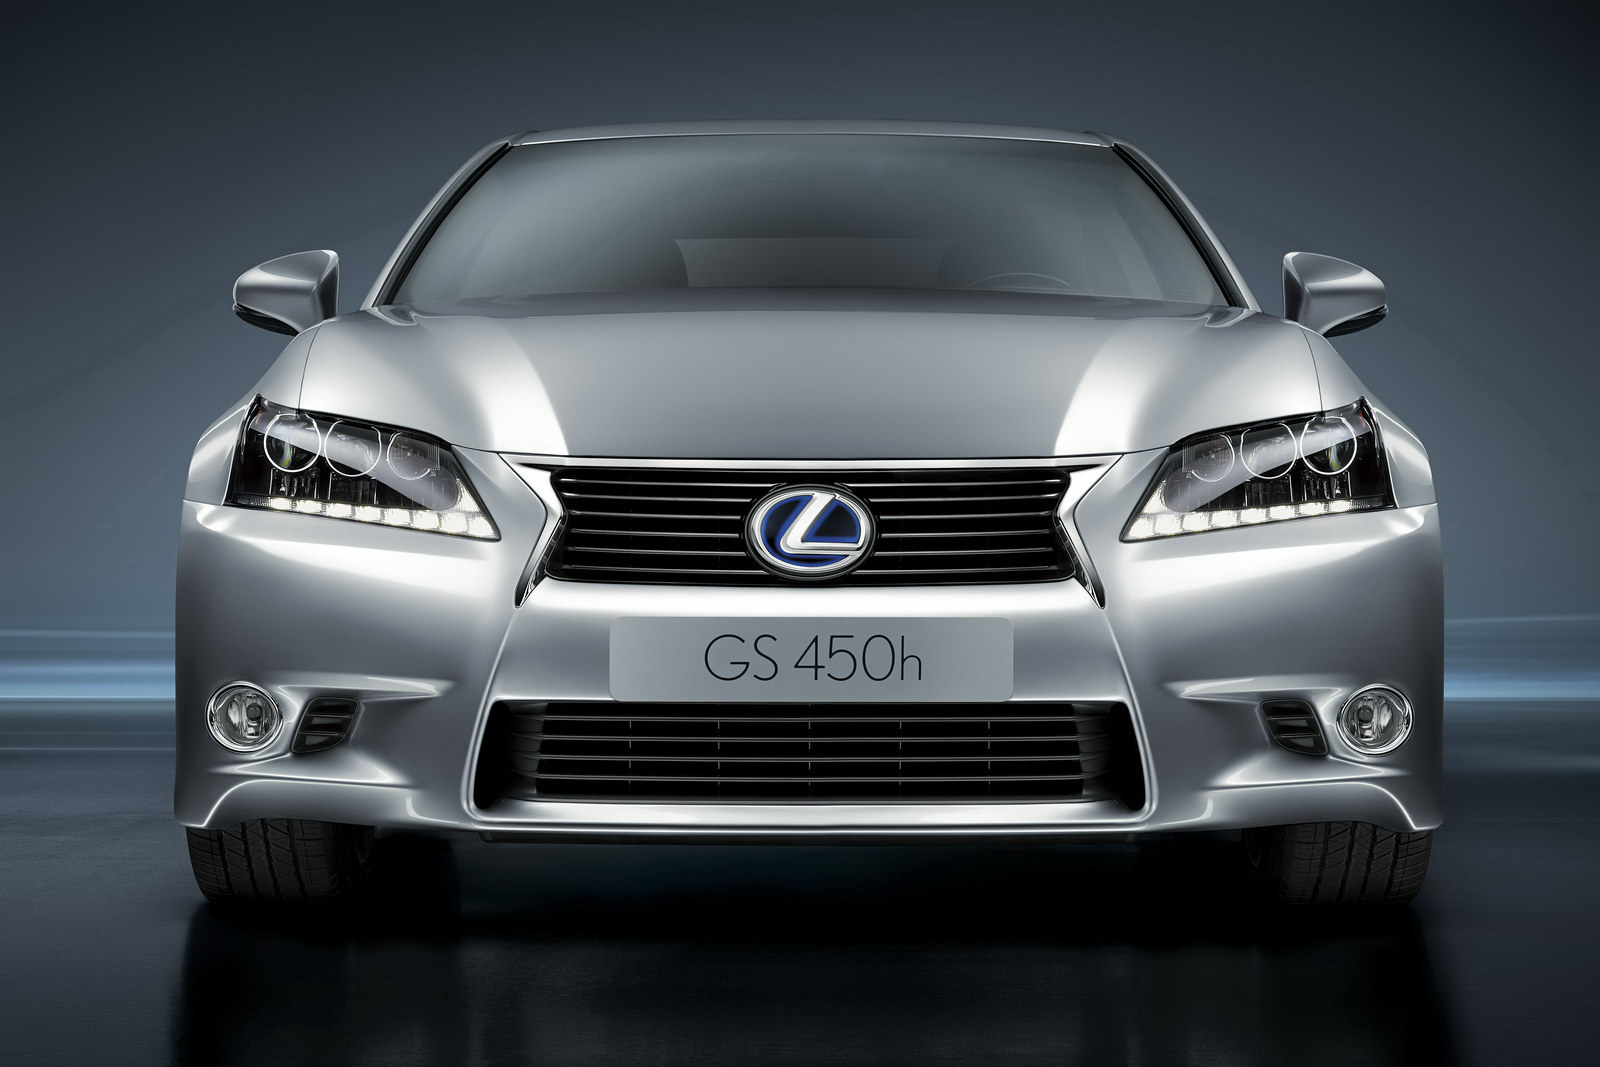 2013 lexus gs 450h officially revealed ahead of frankfurt debut photo gallery 9 titanium plus. Black Bedroom Furniture Sets. Home Design Ideas